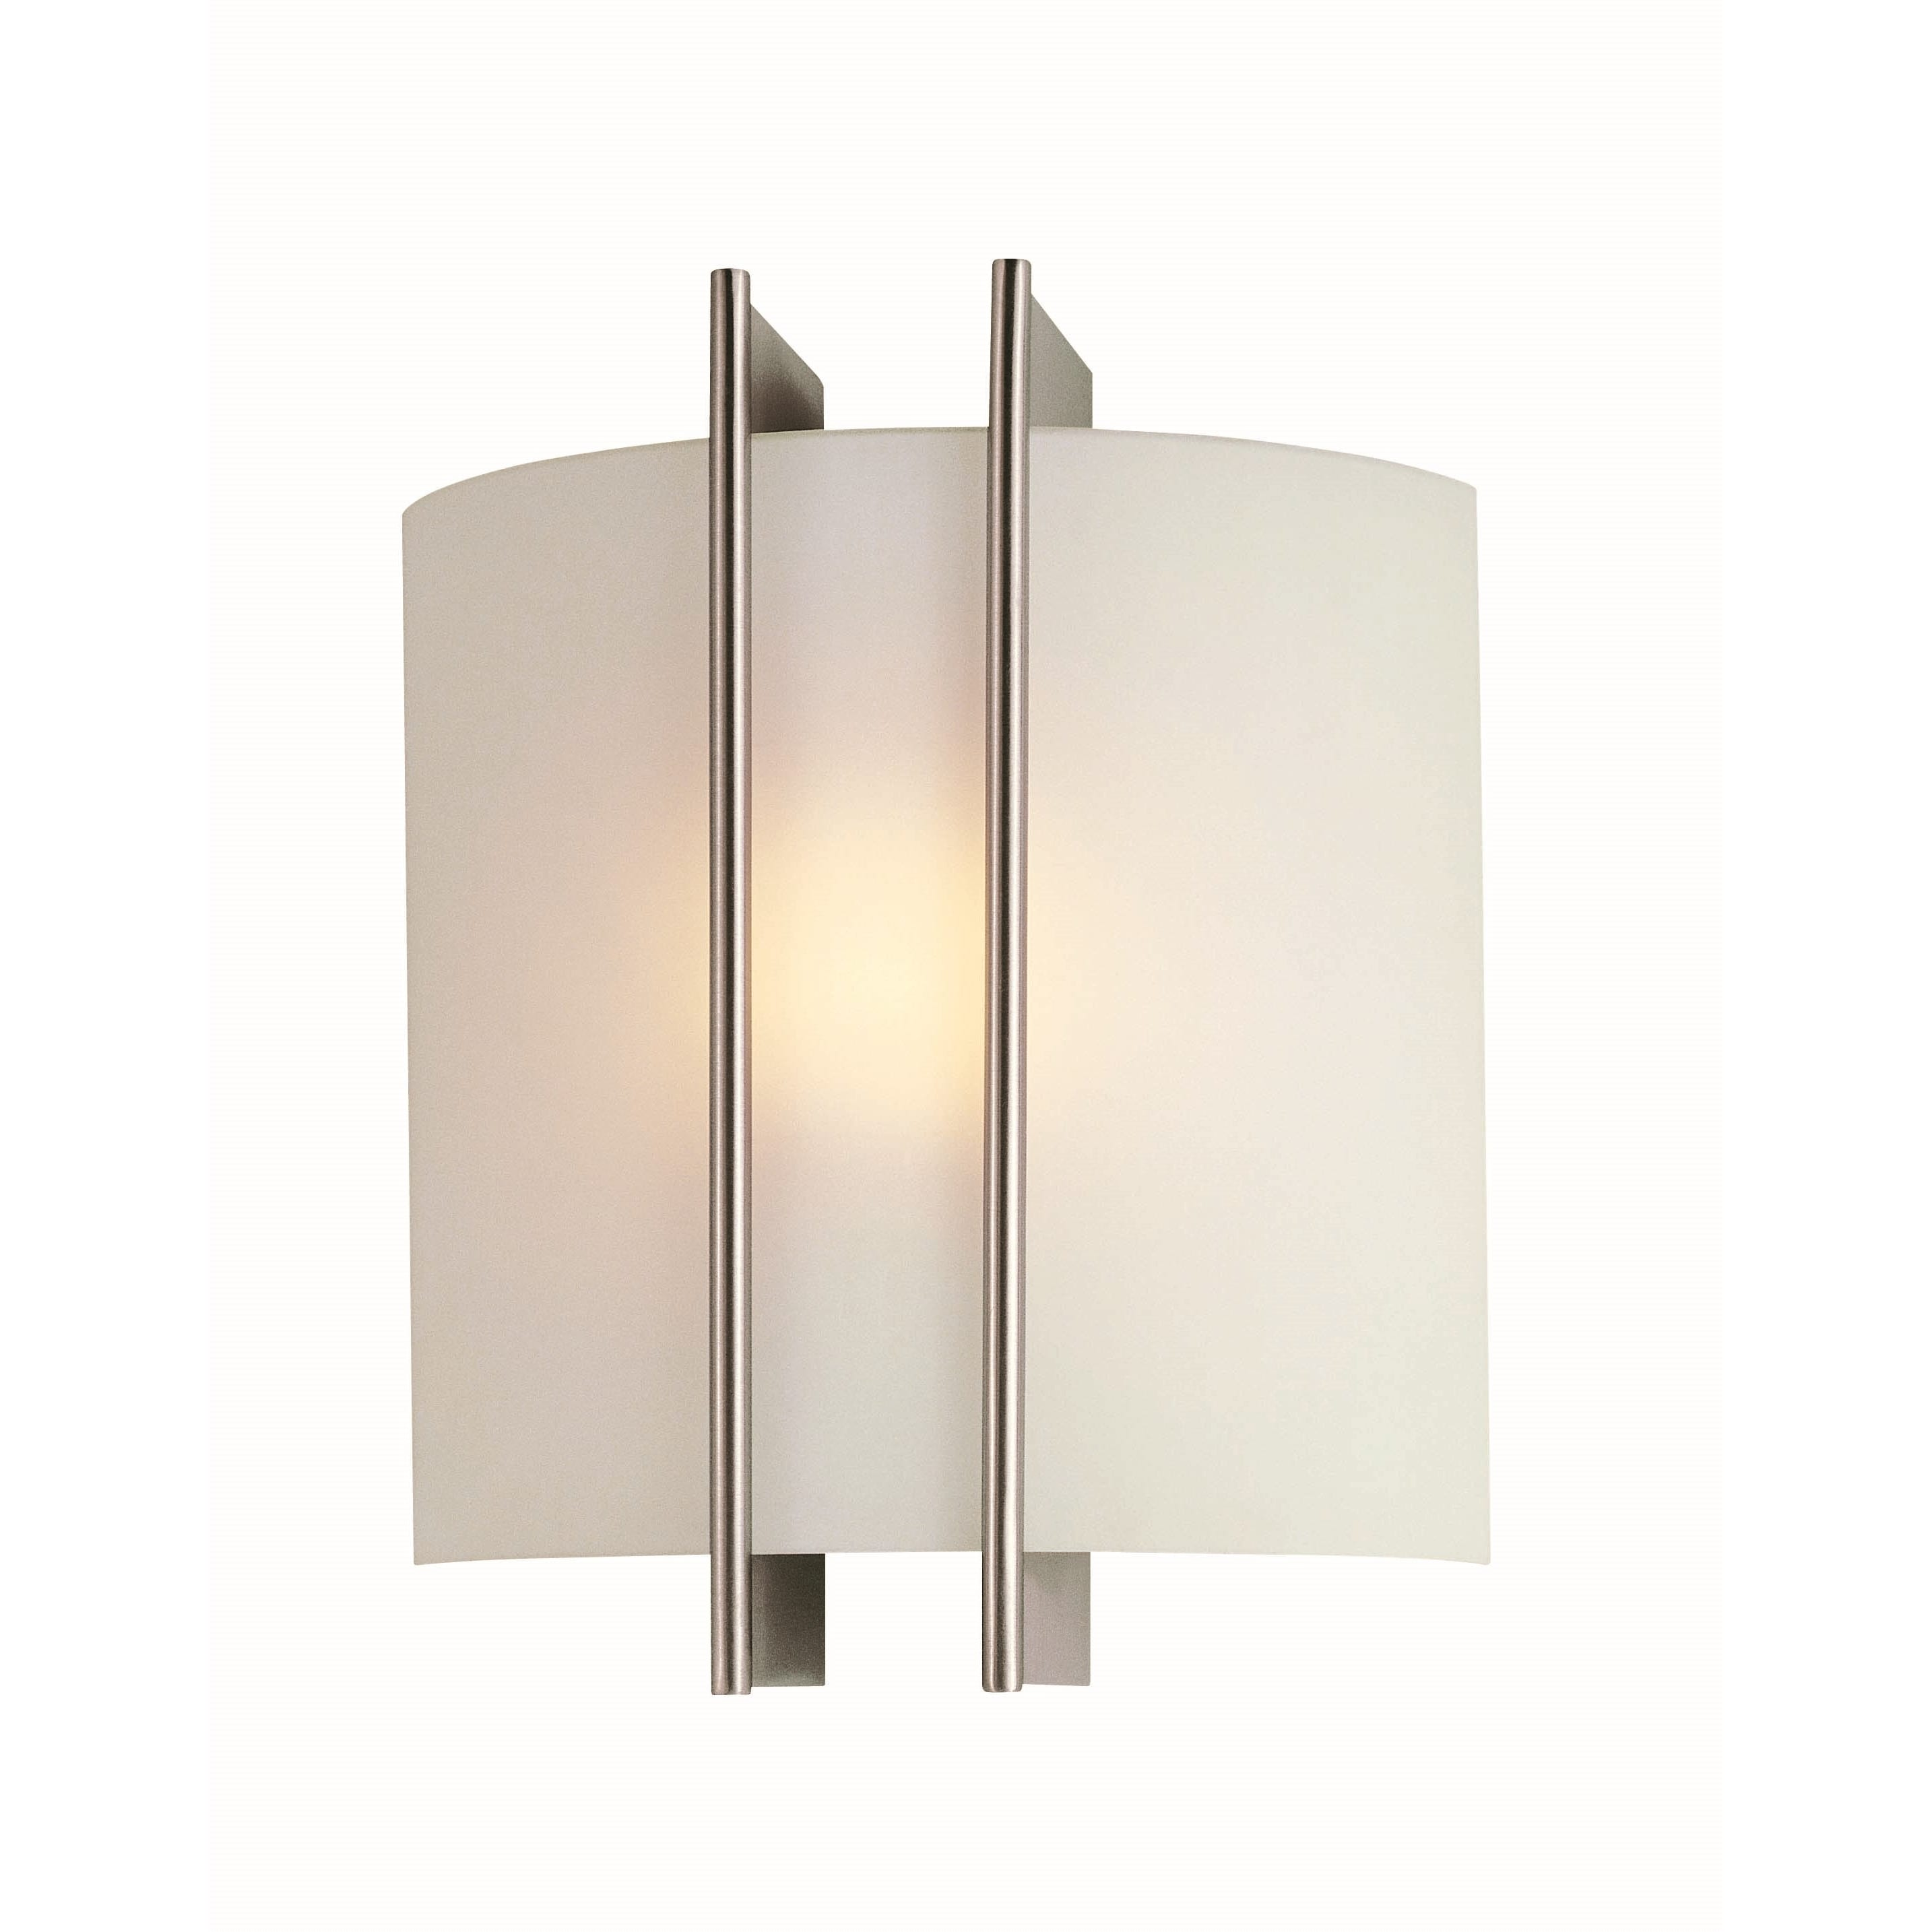 Carson 1-light Wall Sconce - Free Shipping Today - Overstock.com - 16541895